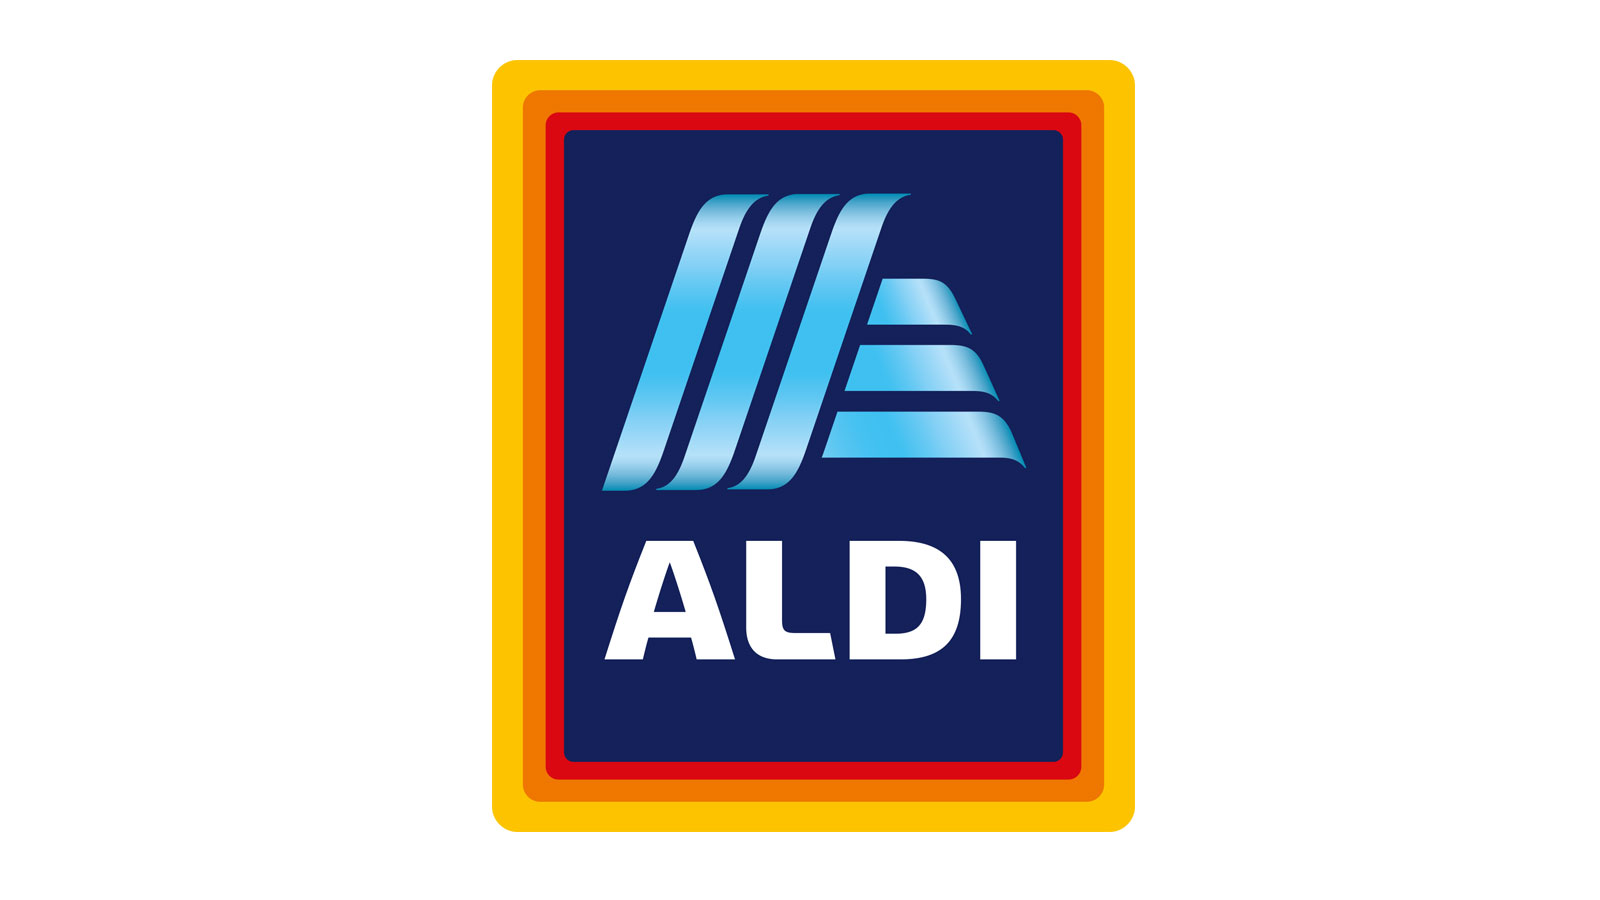 Search District Manager Jobs At Aldi